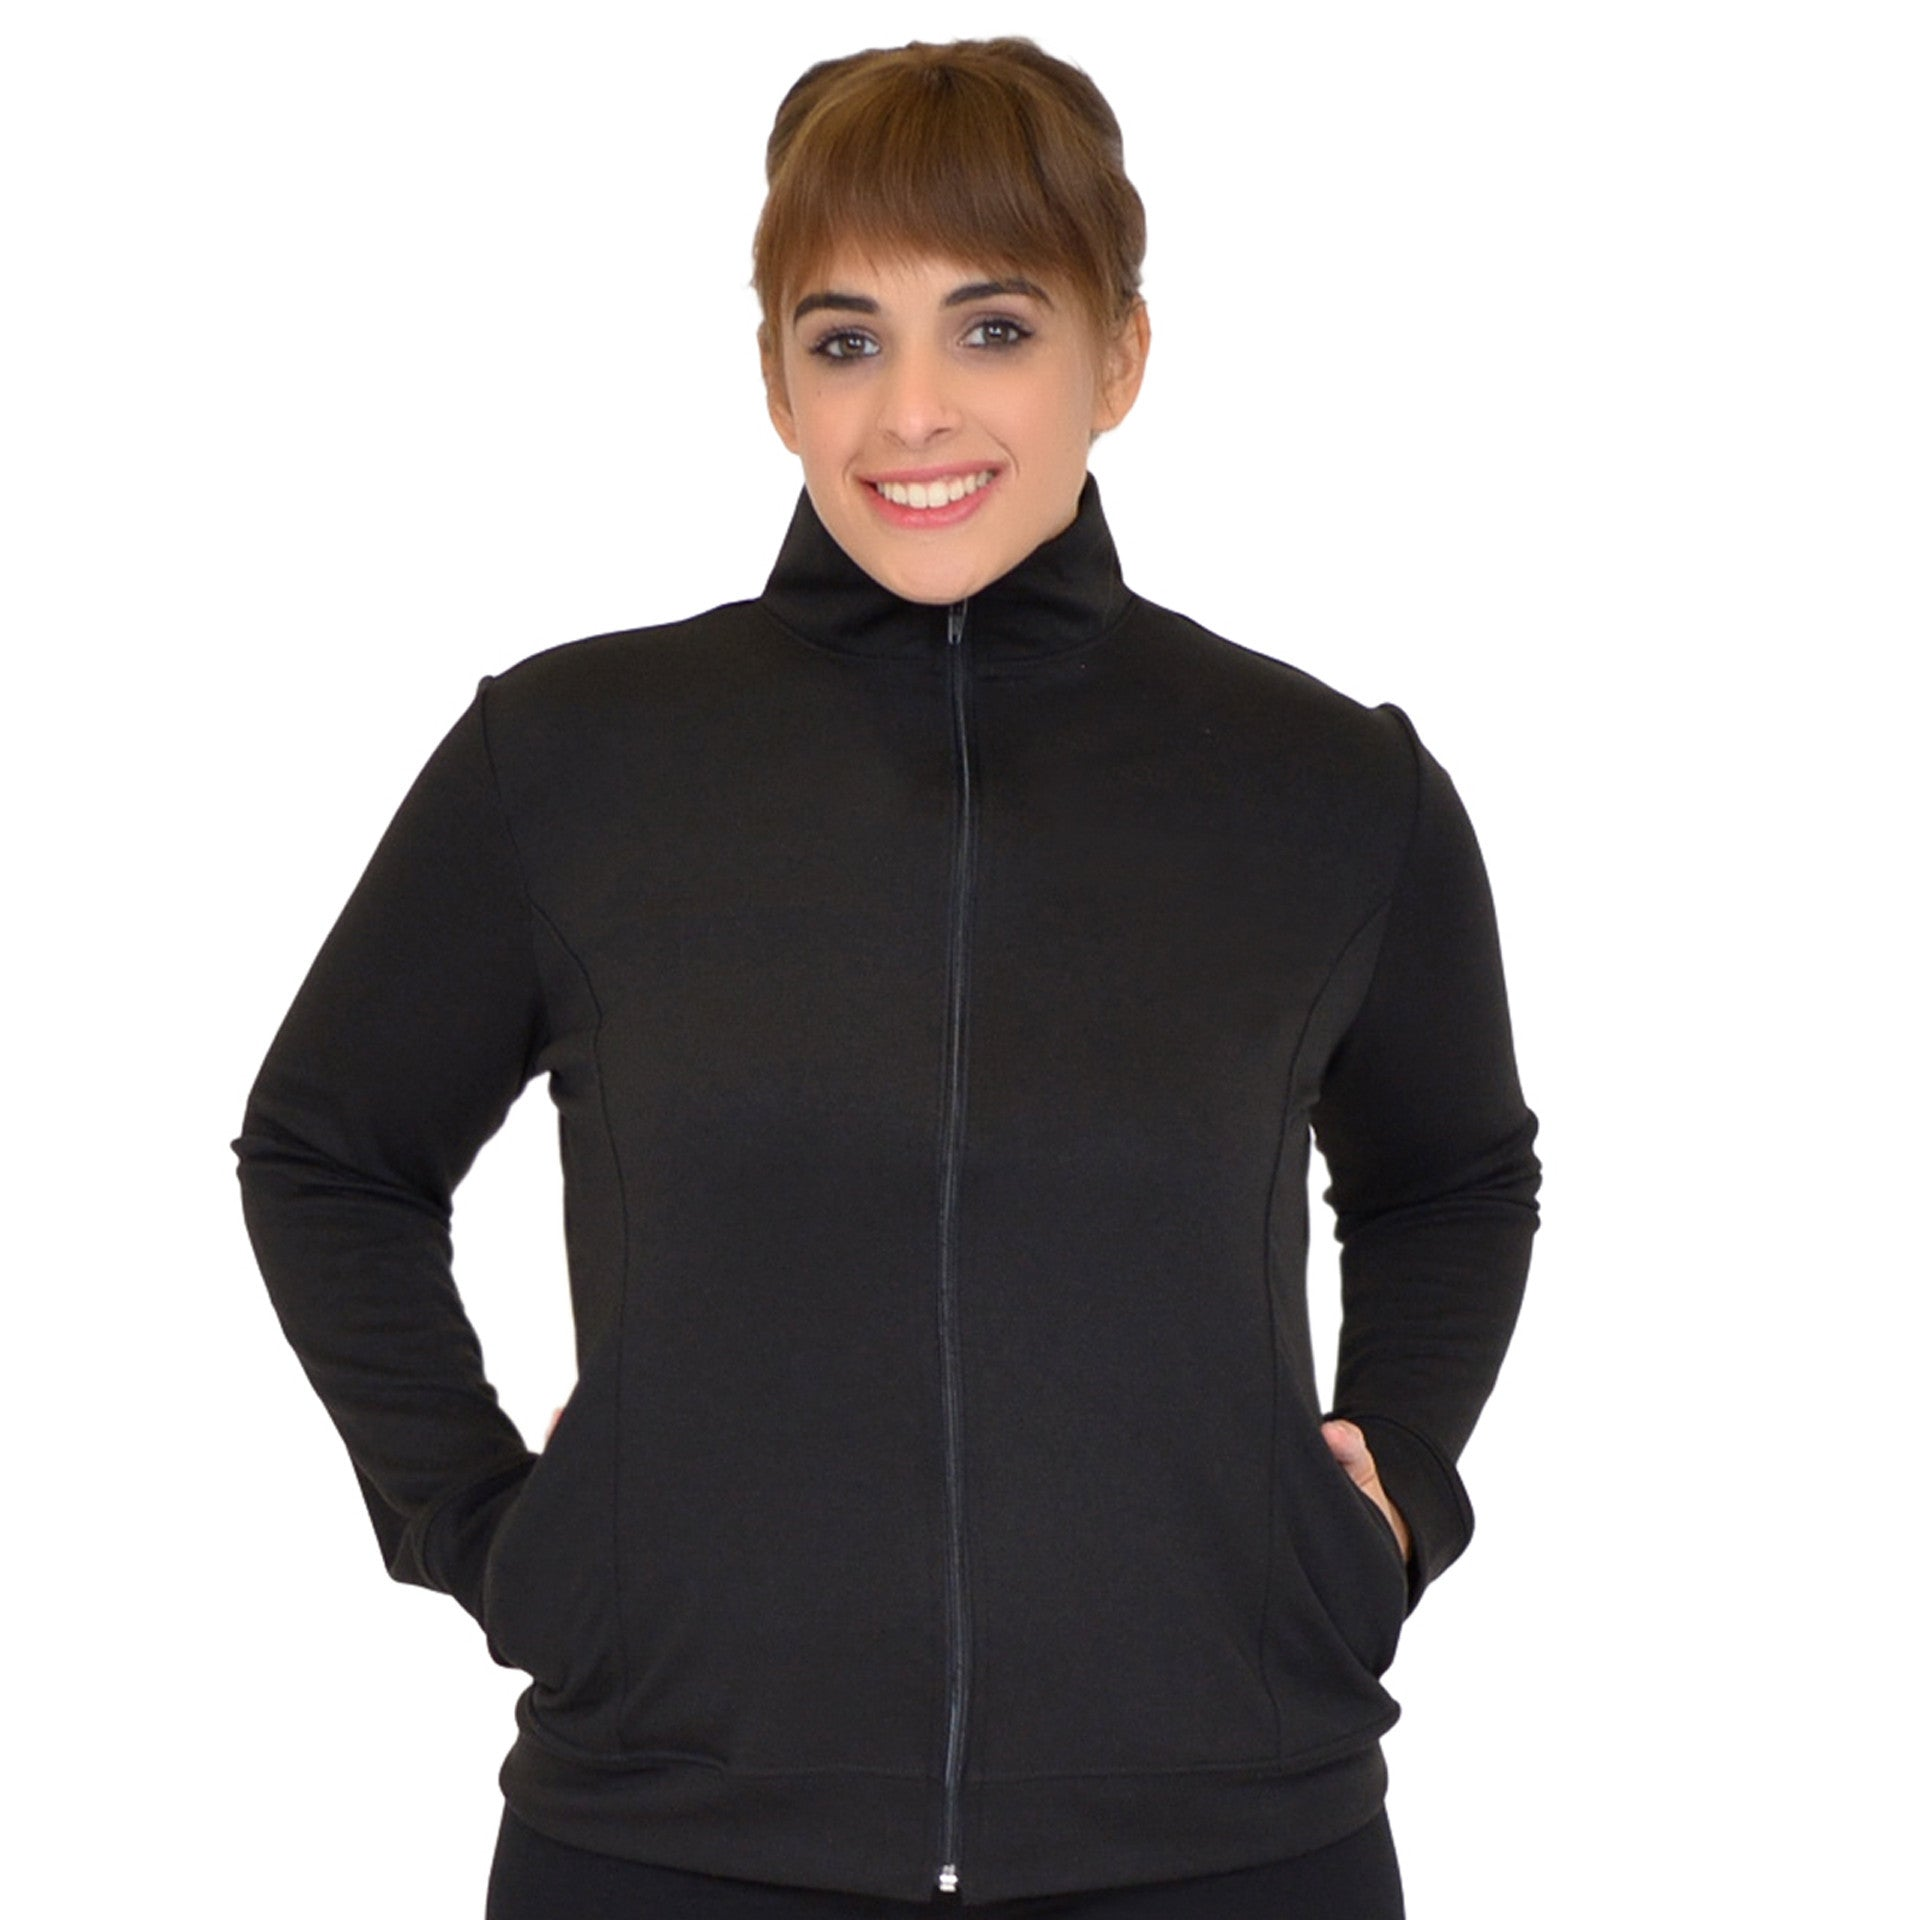 Personalizable and Customizable Plus Size PERFORMANCE Cadet Jacket